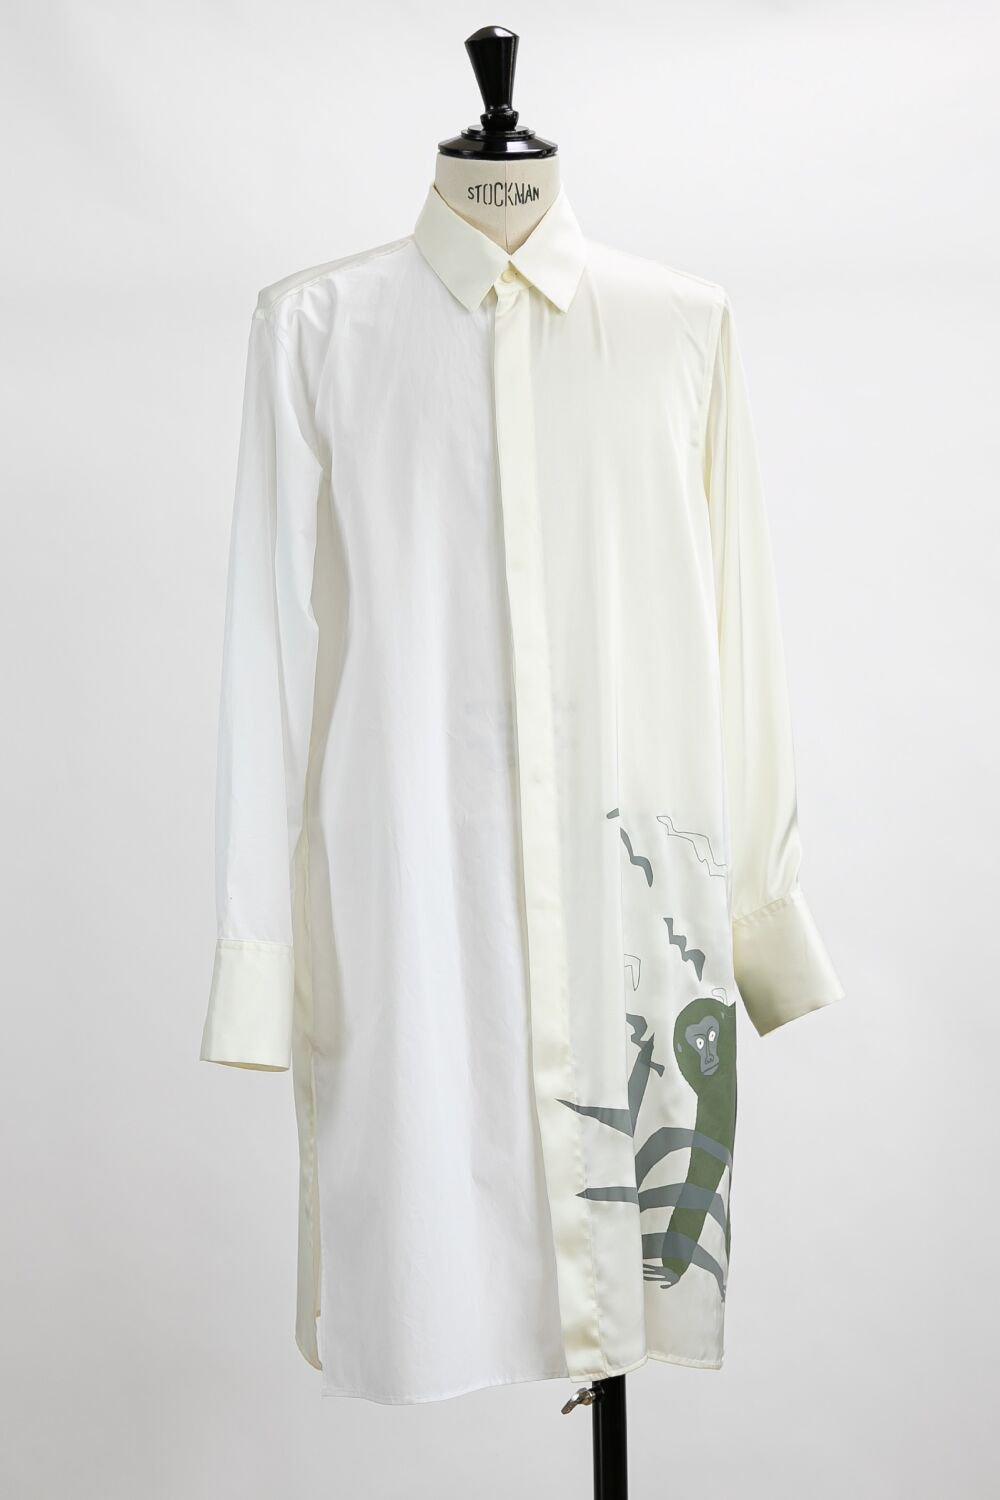 <img class='new_mark_img1' src='https://img.shop-pro.jp/img/new/icons20.gif' style='border:none;display:inline;margin:0px;padding:0px;width:auto;' />50%OFF MONKEY LONG SHIRT WHITE